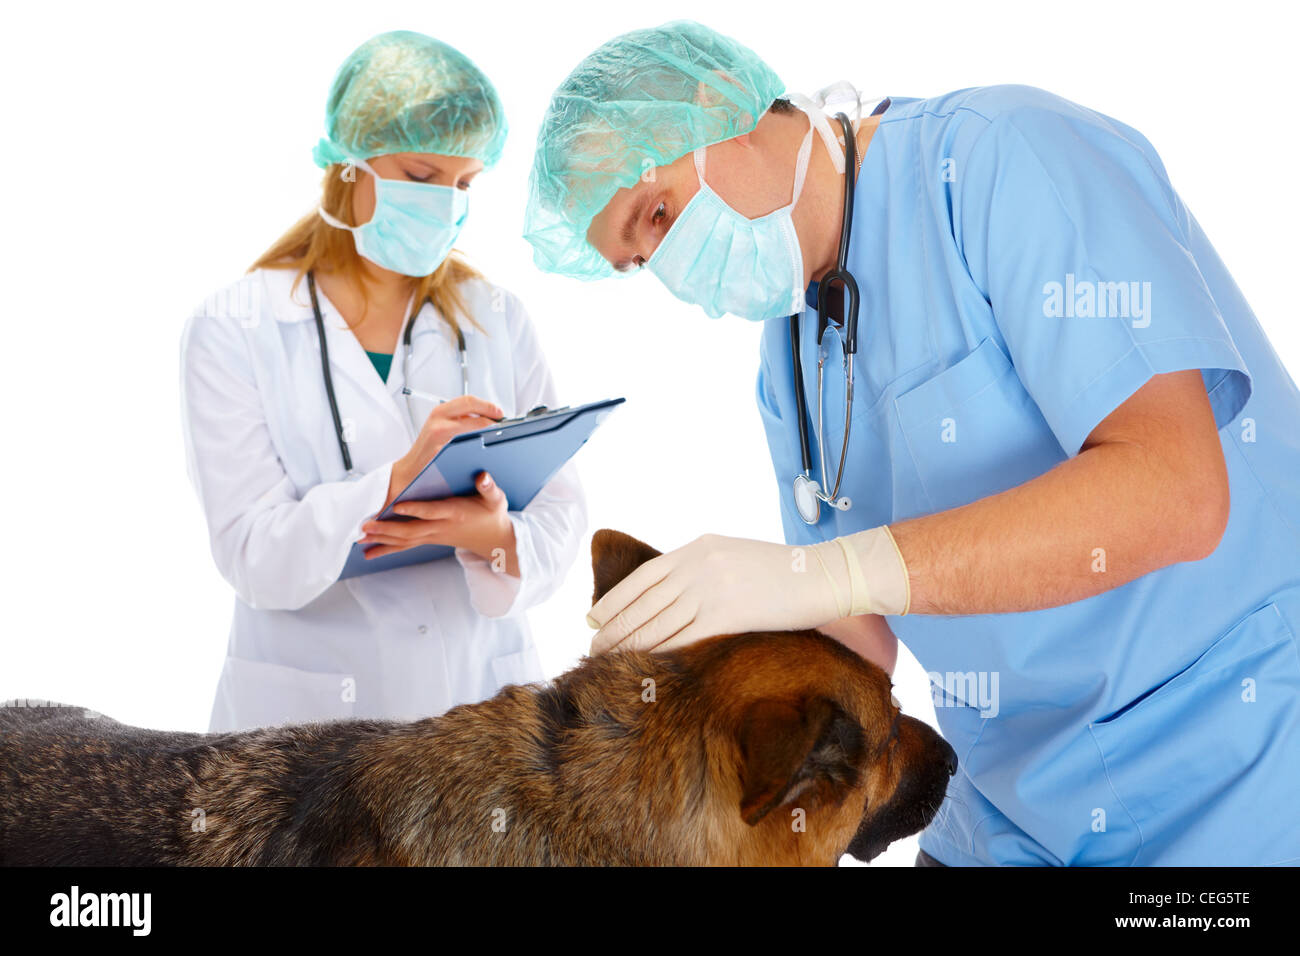 Vet and assistant examining dog, isolated on white - Stock Image